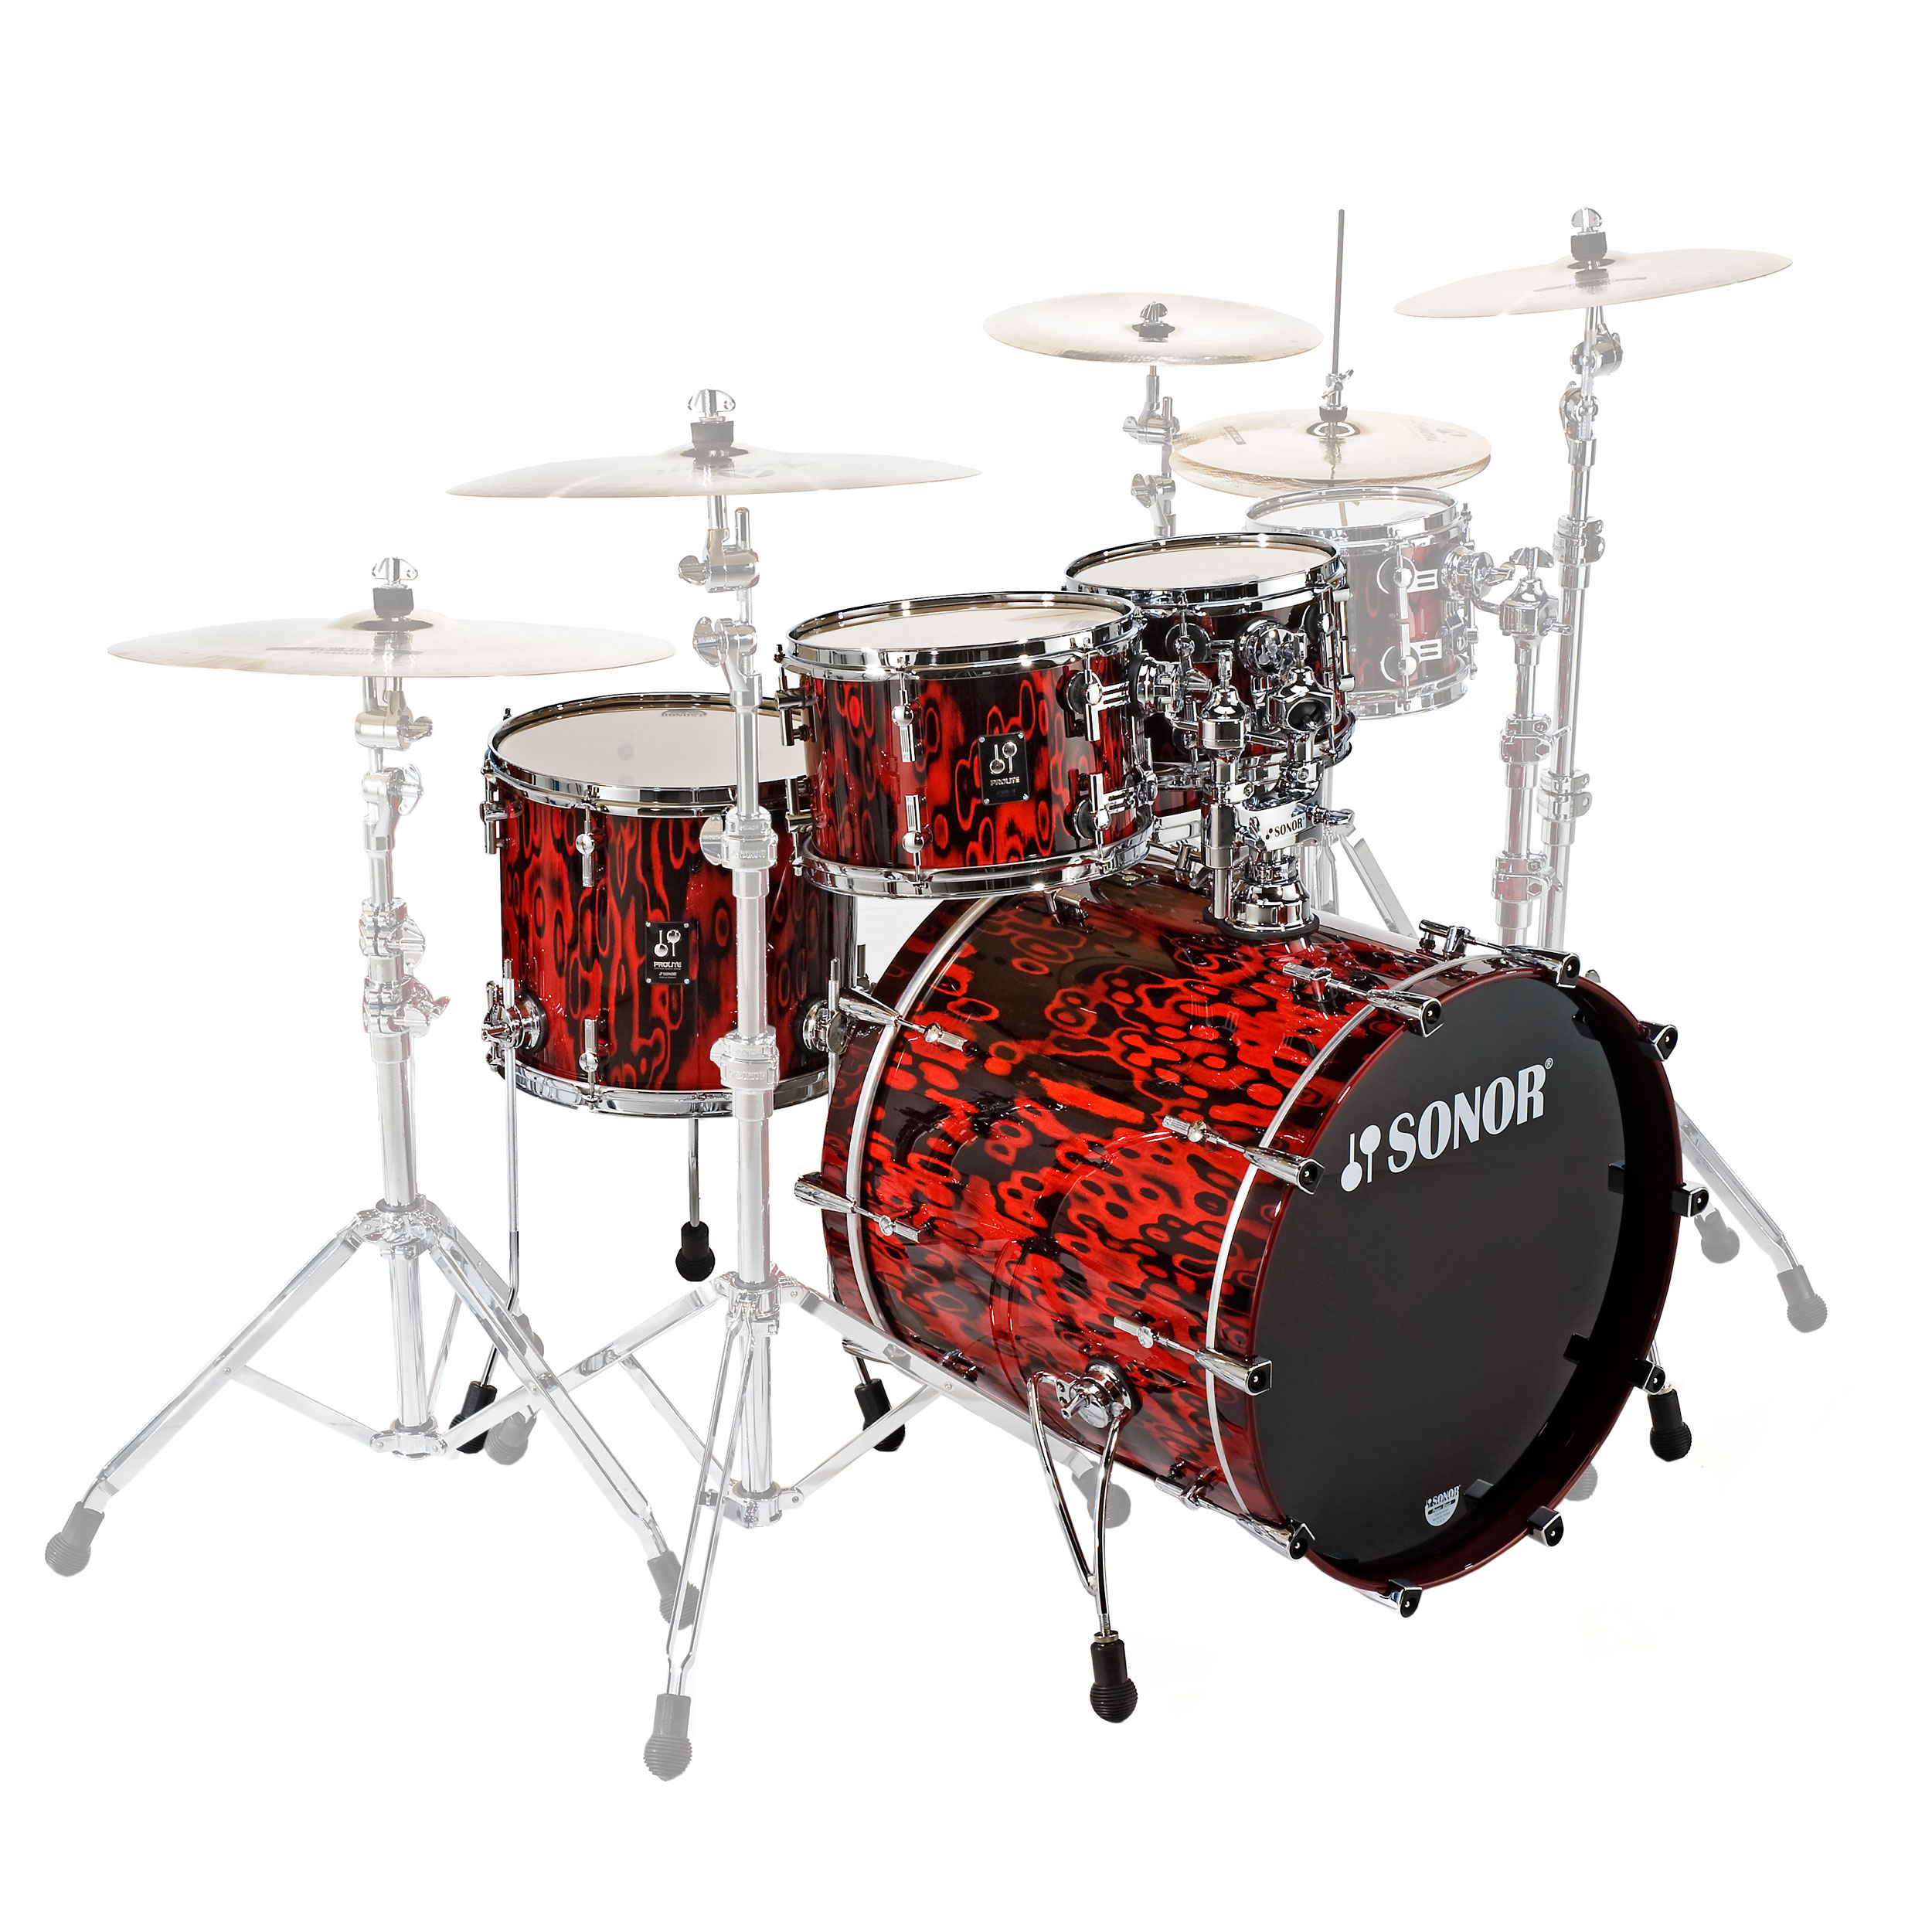 "Sonor ProLite Studio 1 4-Piece Drum Set Shell Pack (20"" Bass, 10/12/14"" Toms)"